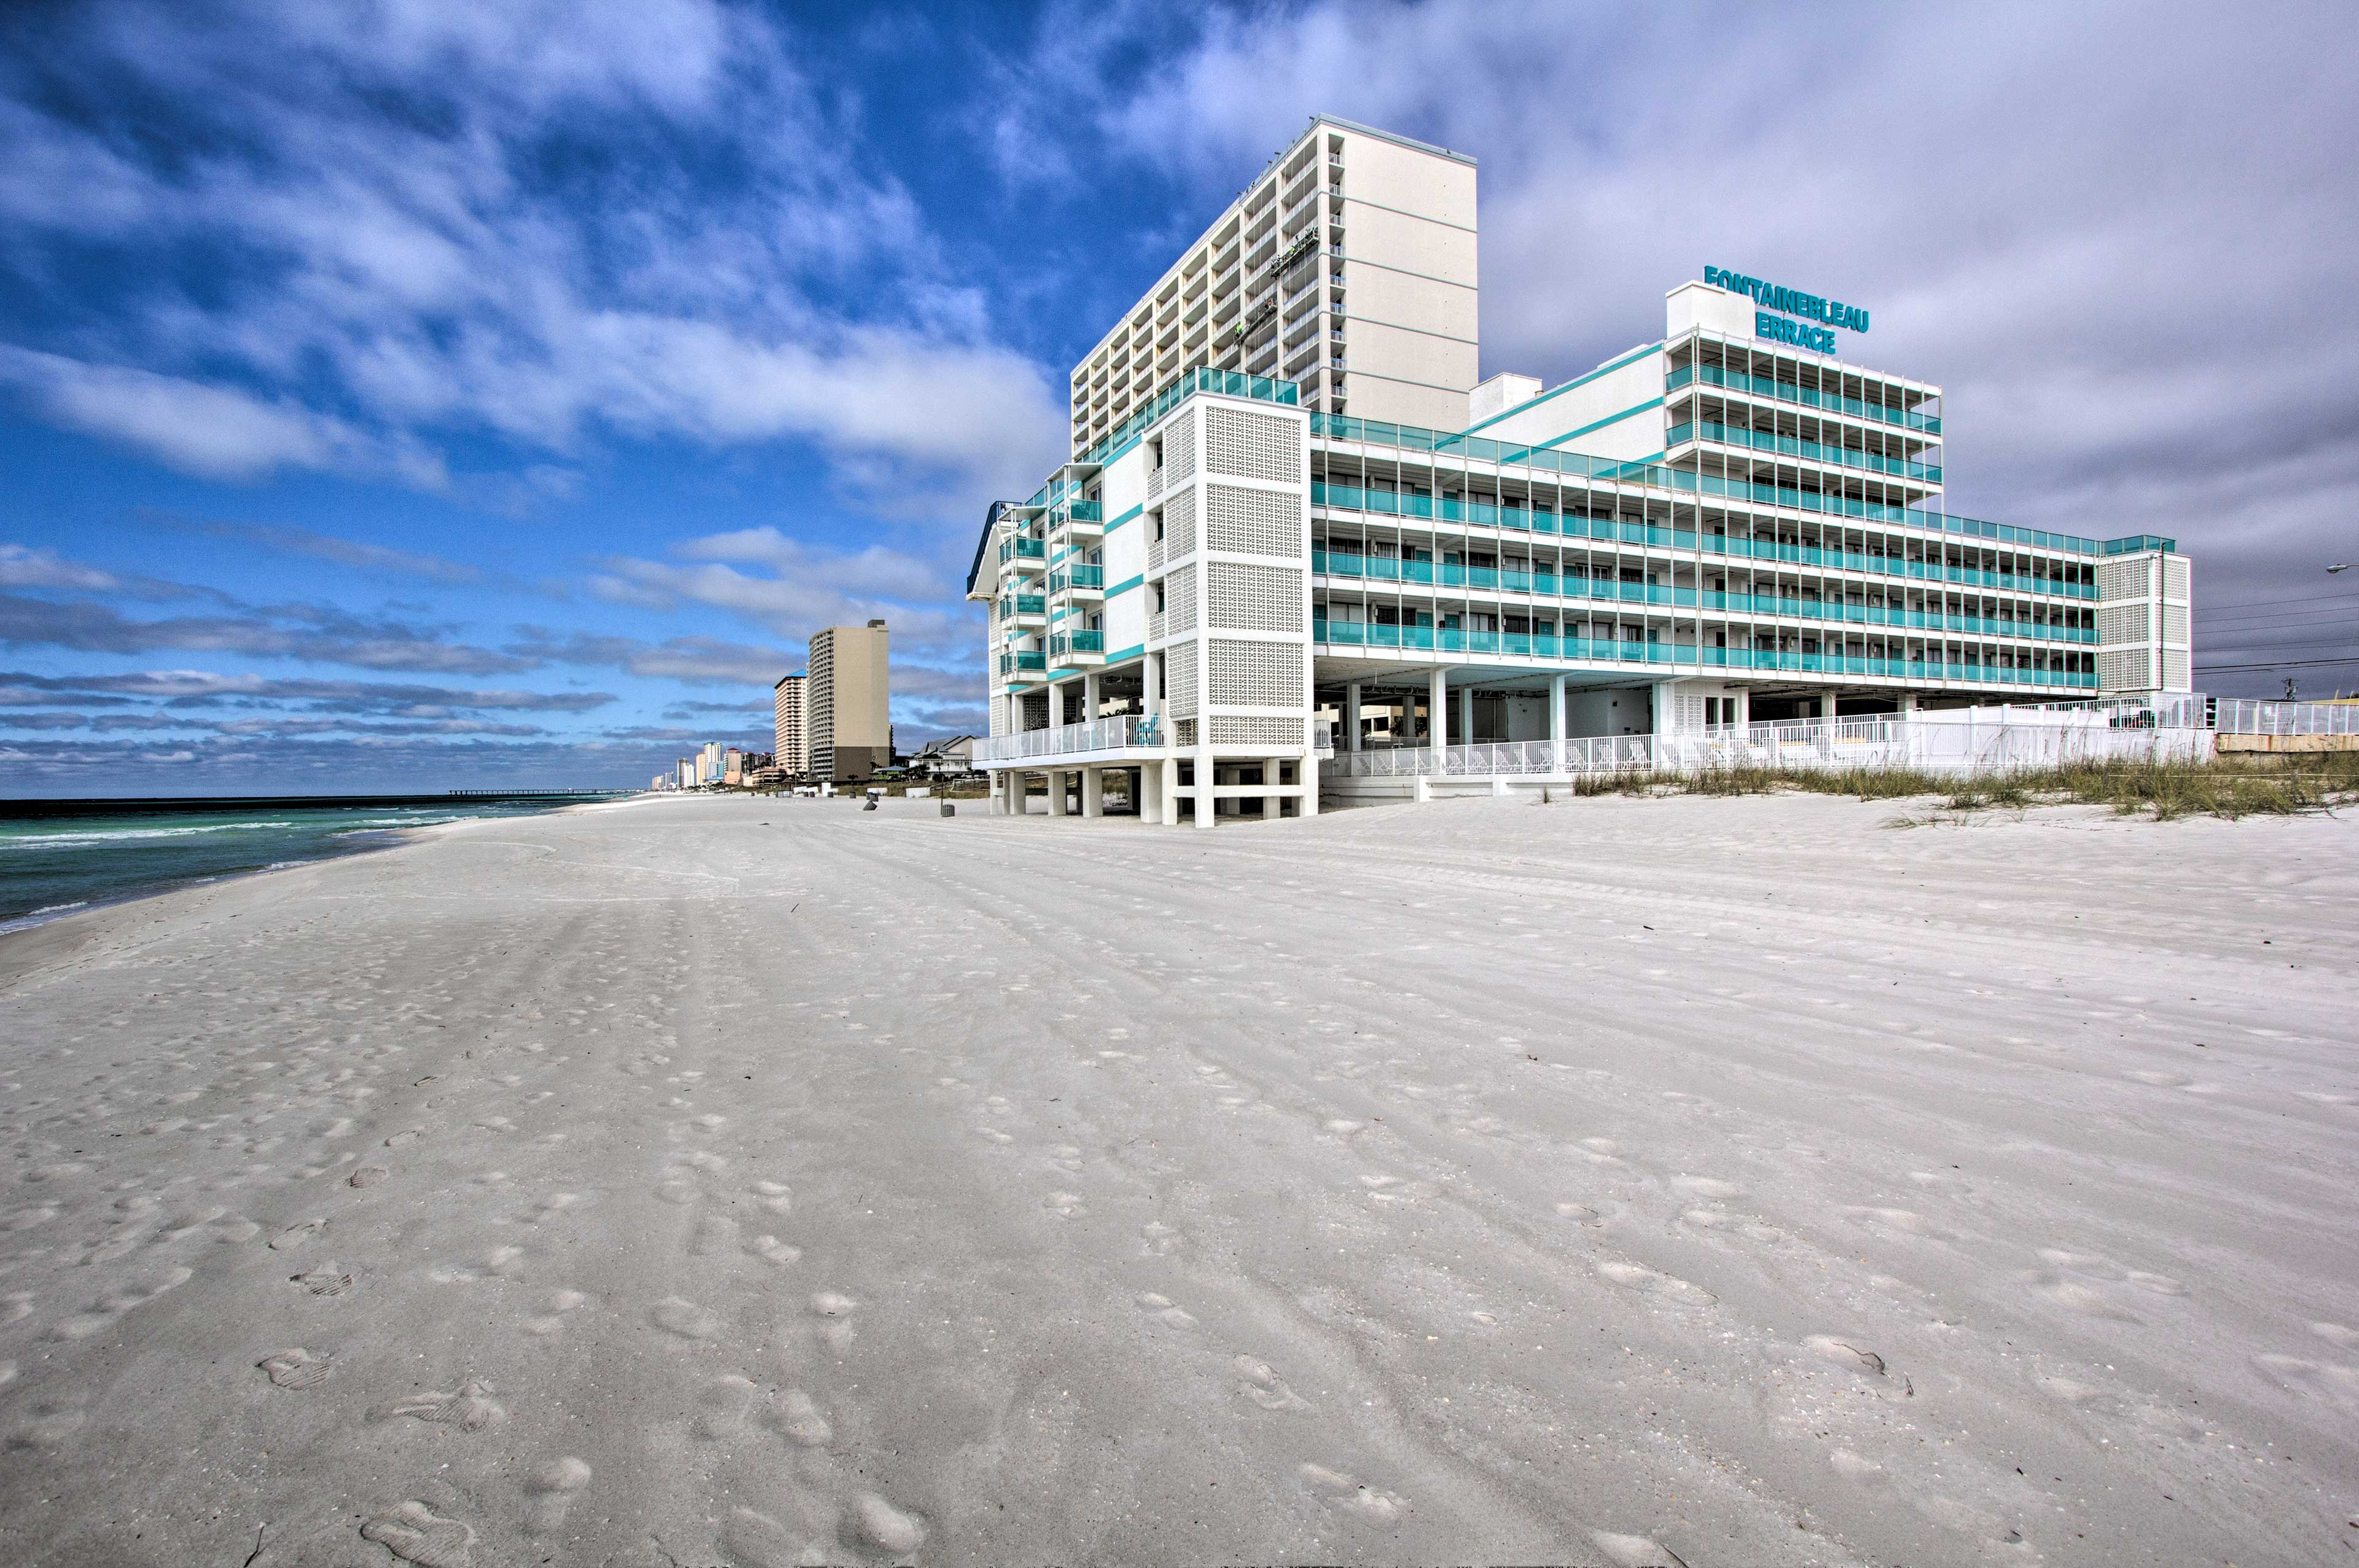 The Gulf of Mexico waves are a short walk from your vacation rental.